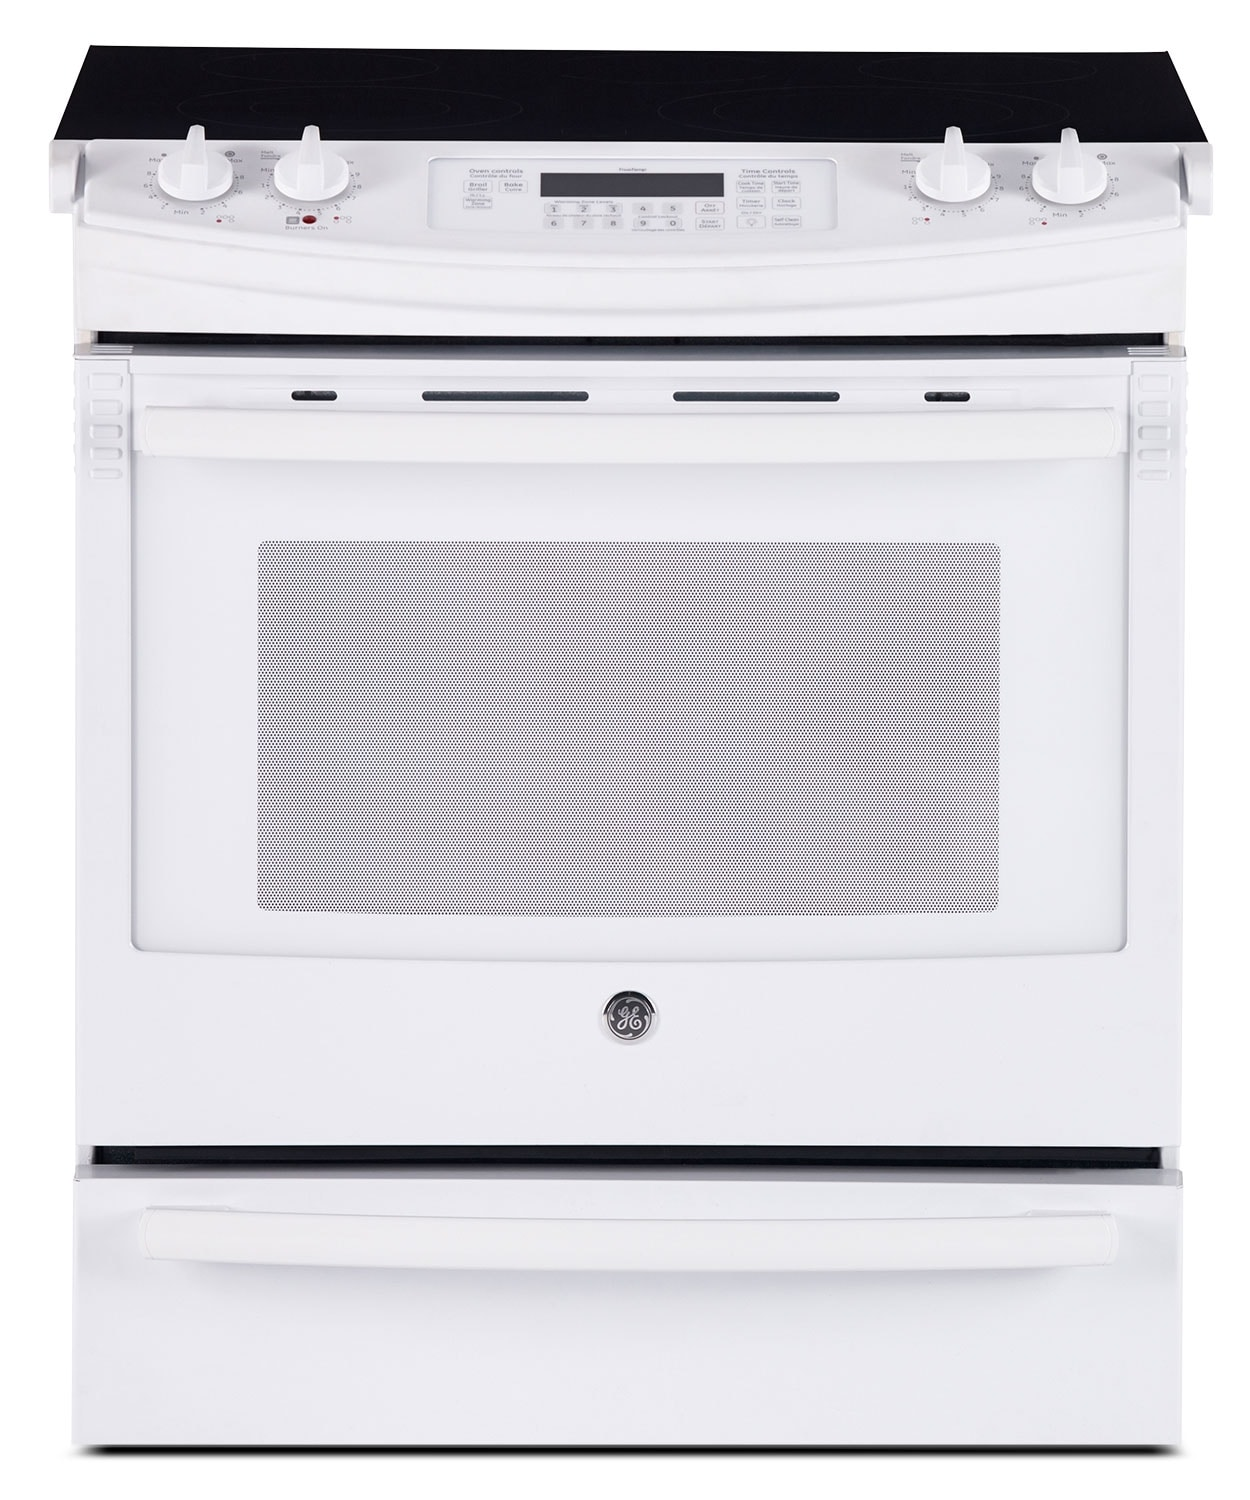 lg double oven electric range manual